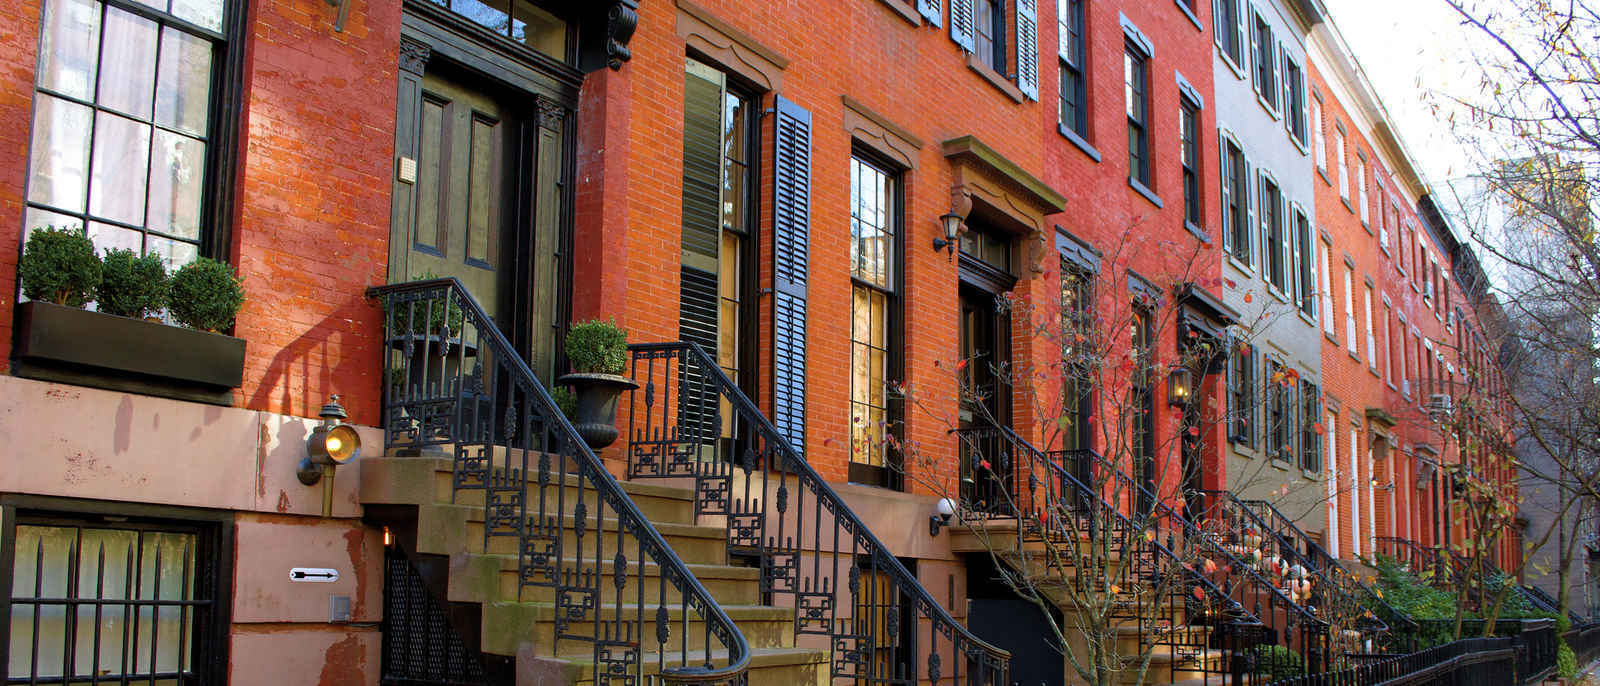 Townhouses on tree-lined street in the West Village, New York